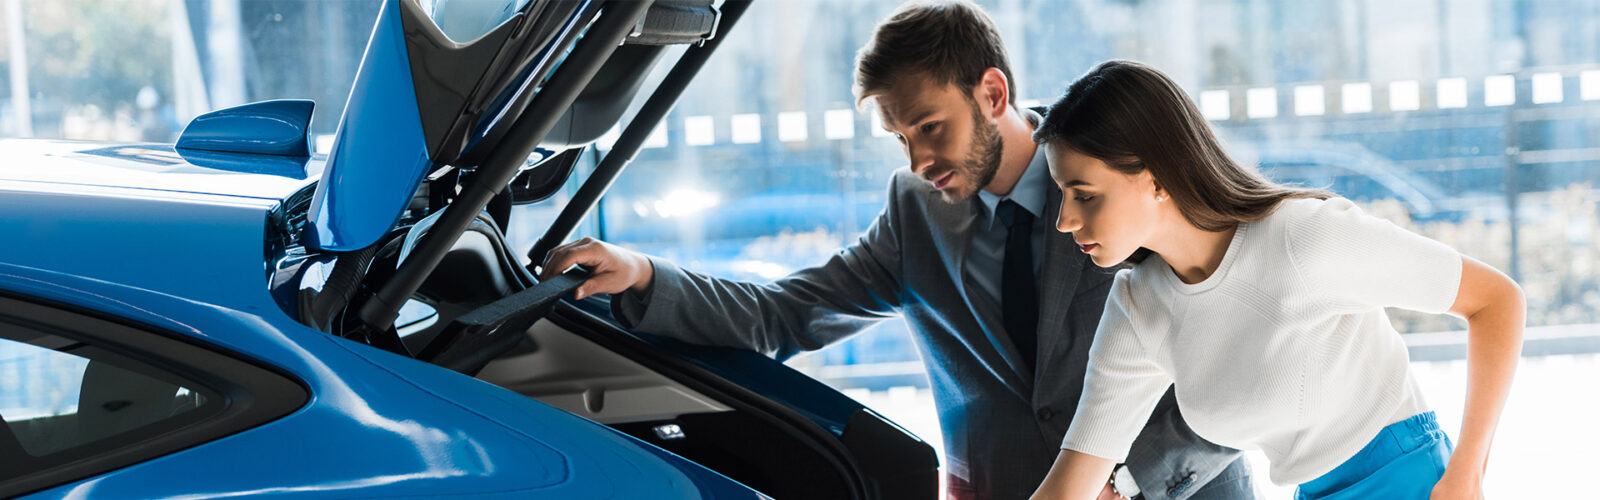 Car Insurance in Deer Park, Queens NY, Ozone Park